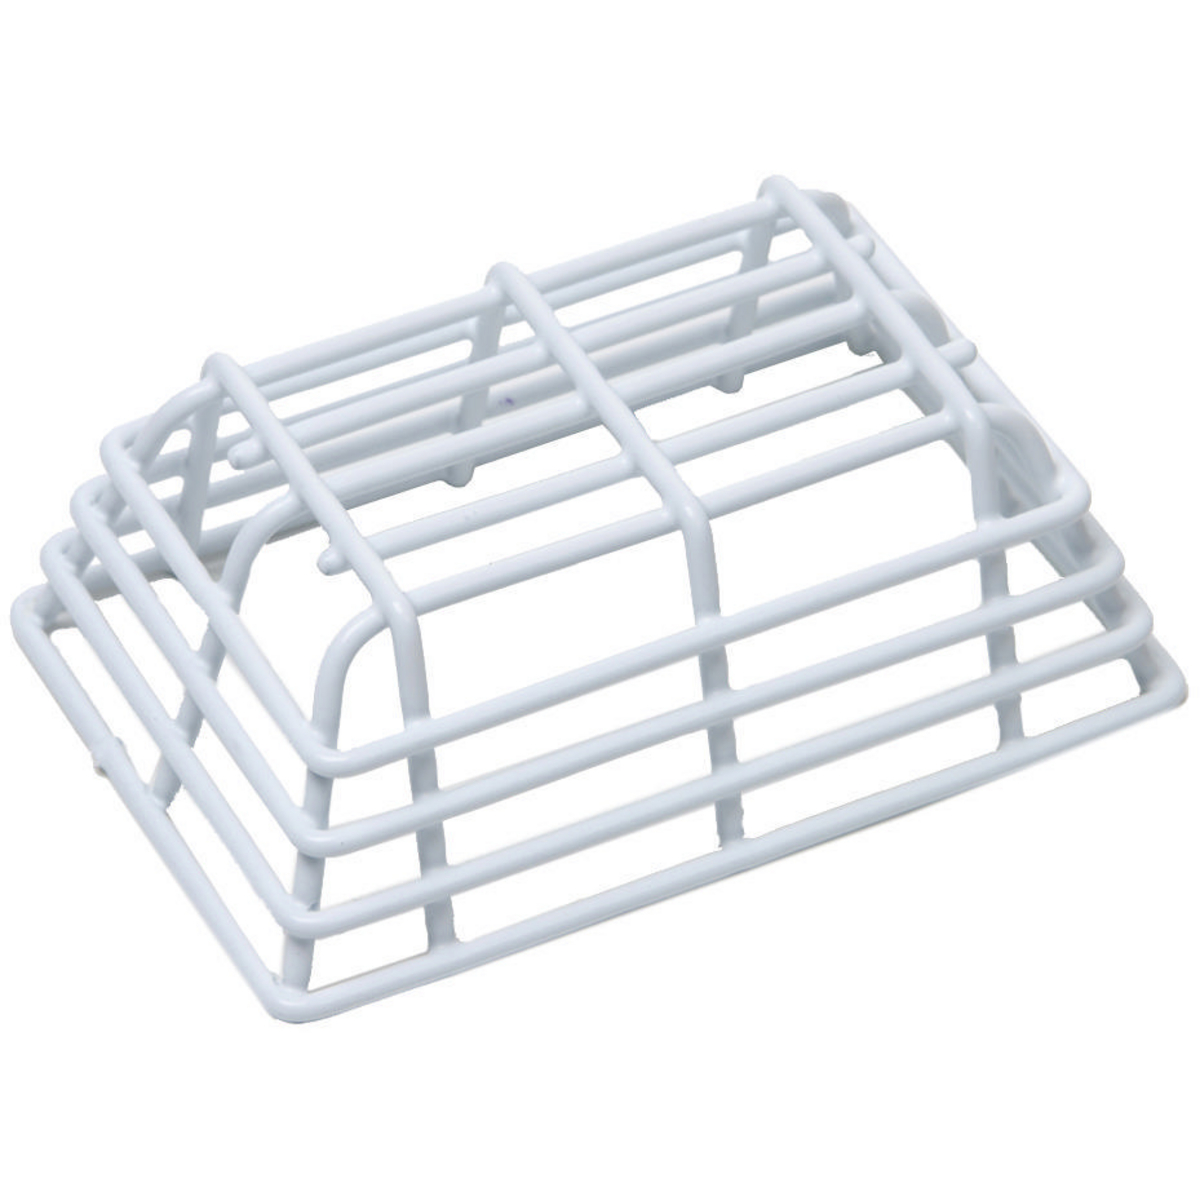 HUBAWSG ENCLOSURE,WIRE,PROTECTIVE,WALL SW ,AWSG, HUBBELL